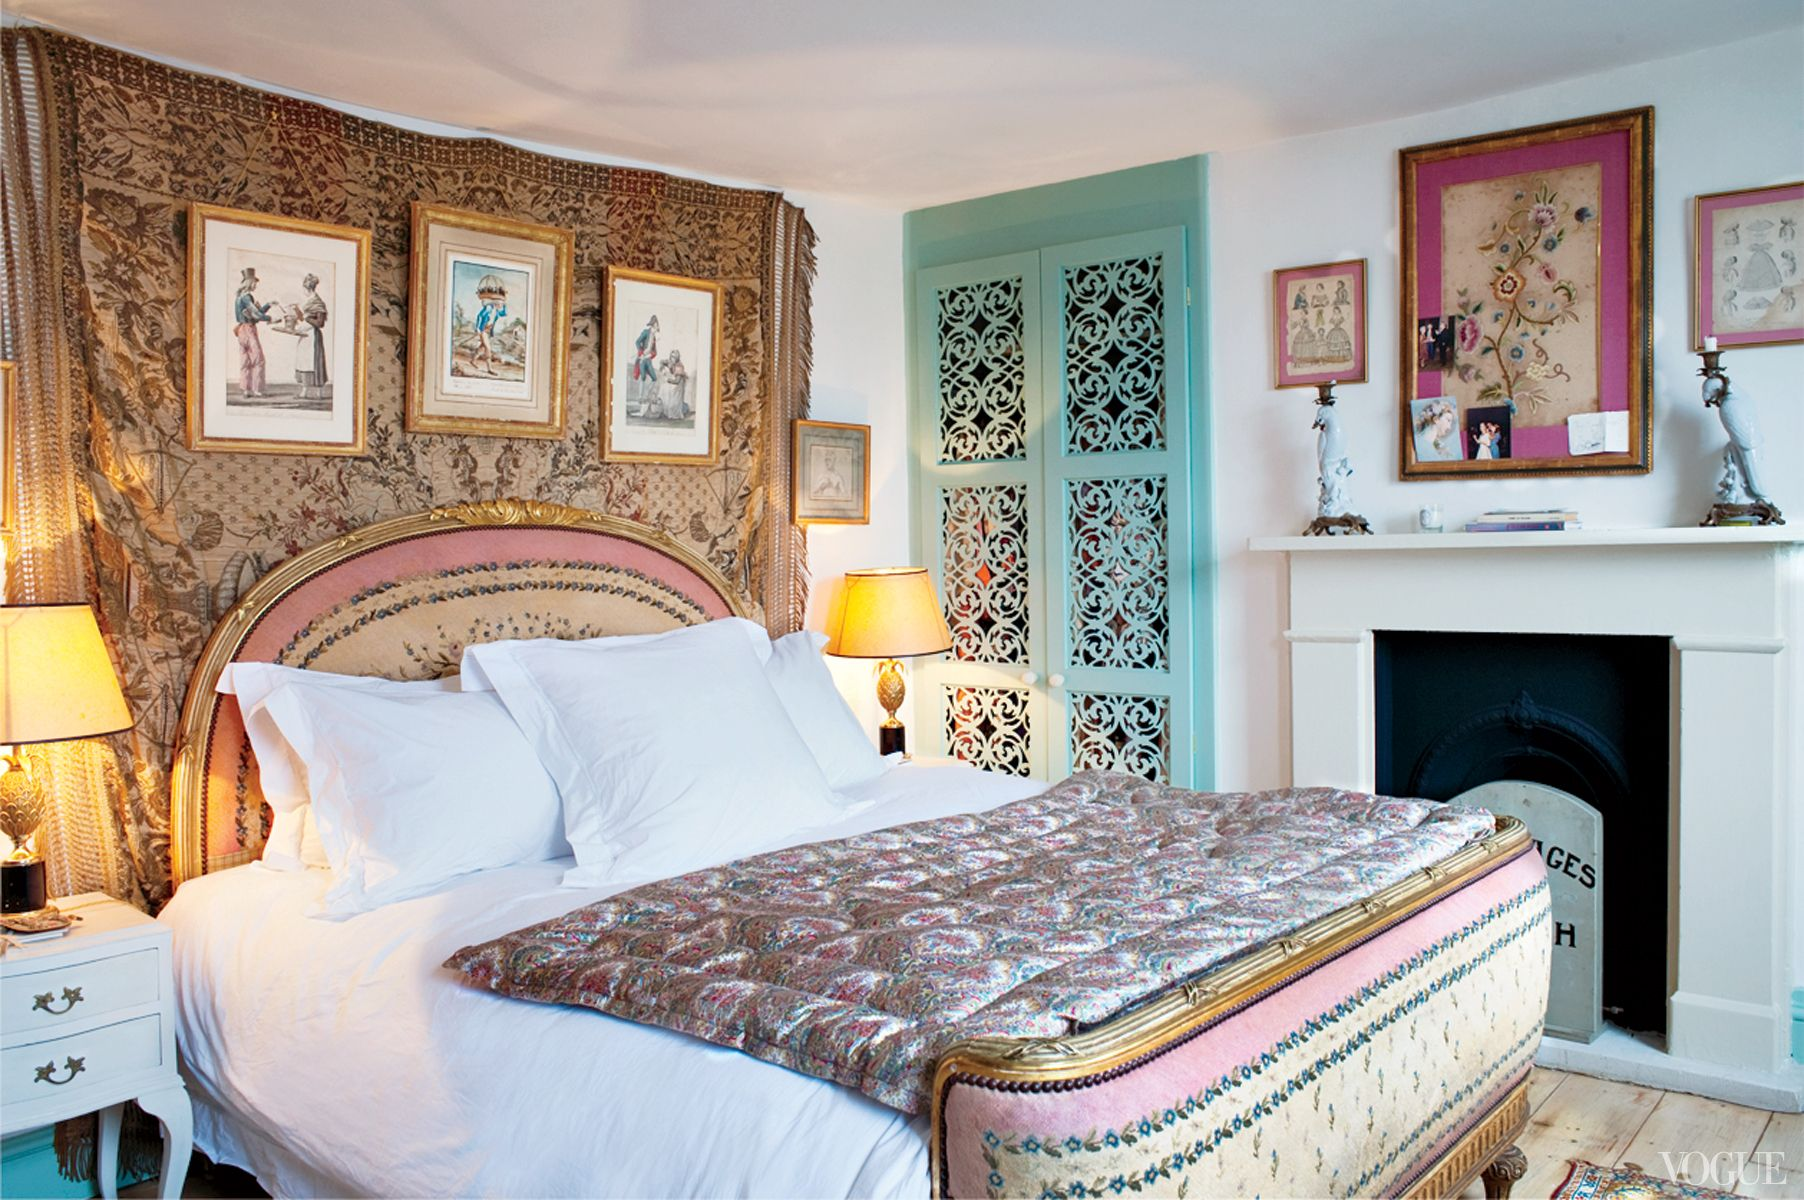 Step inside the granny chic London home of